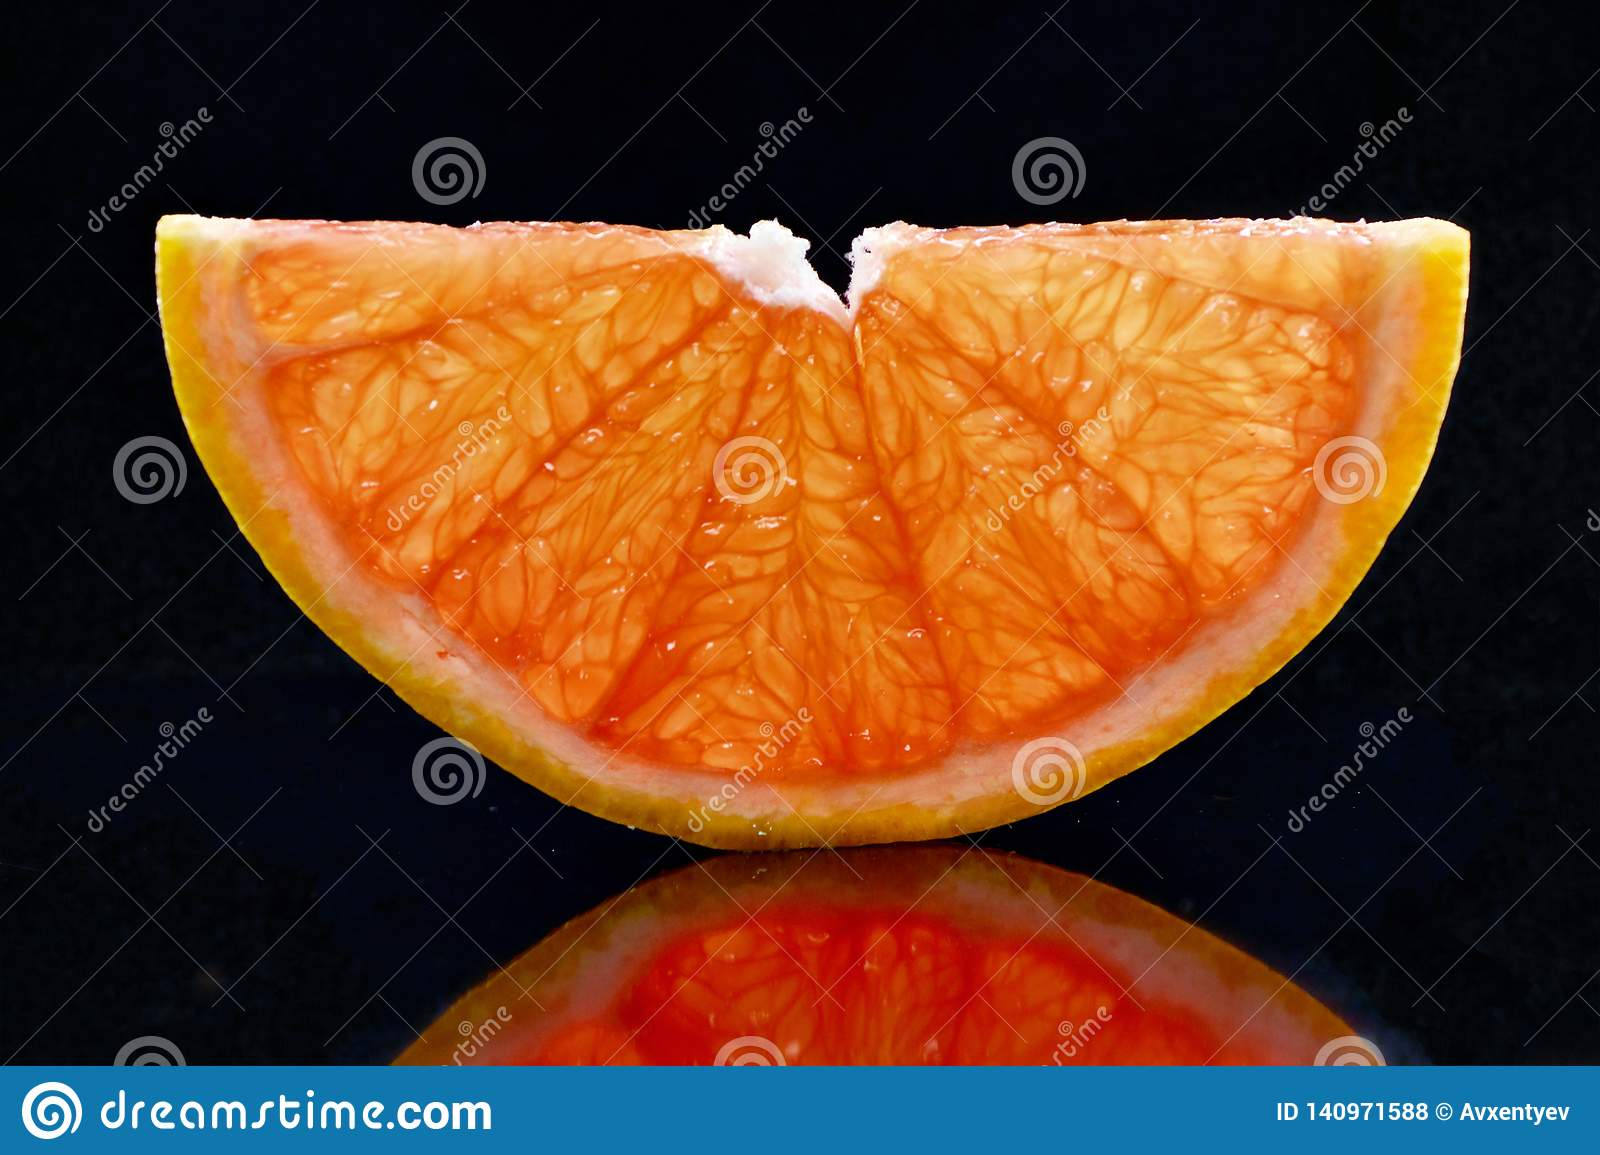 Half transparent slice of grapefruit on a black background.